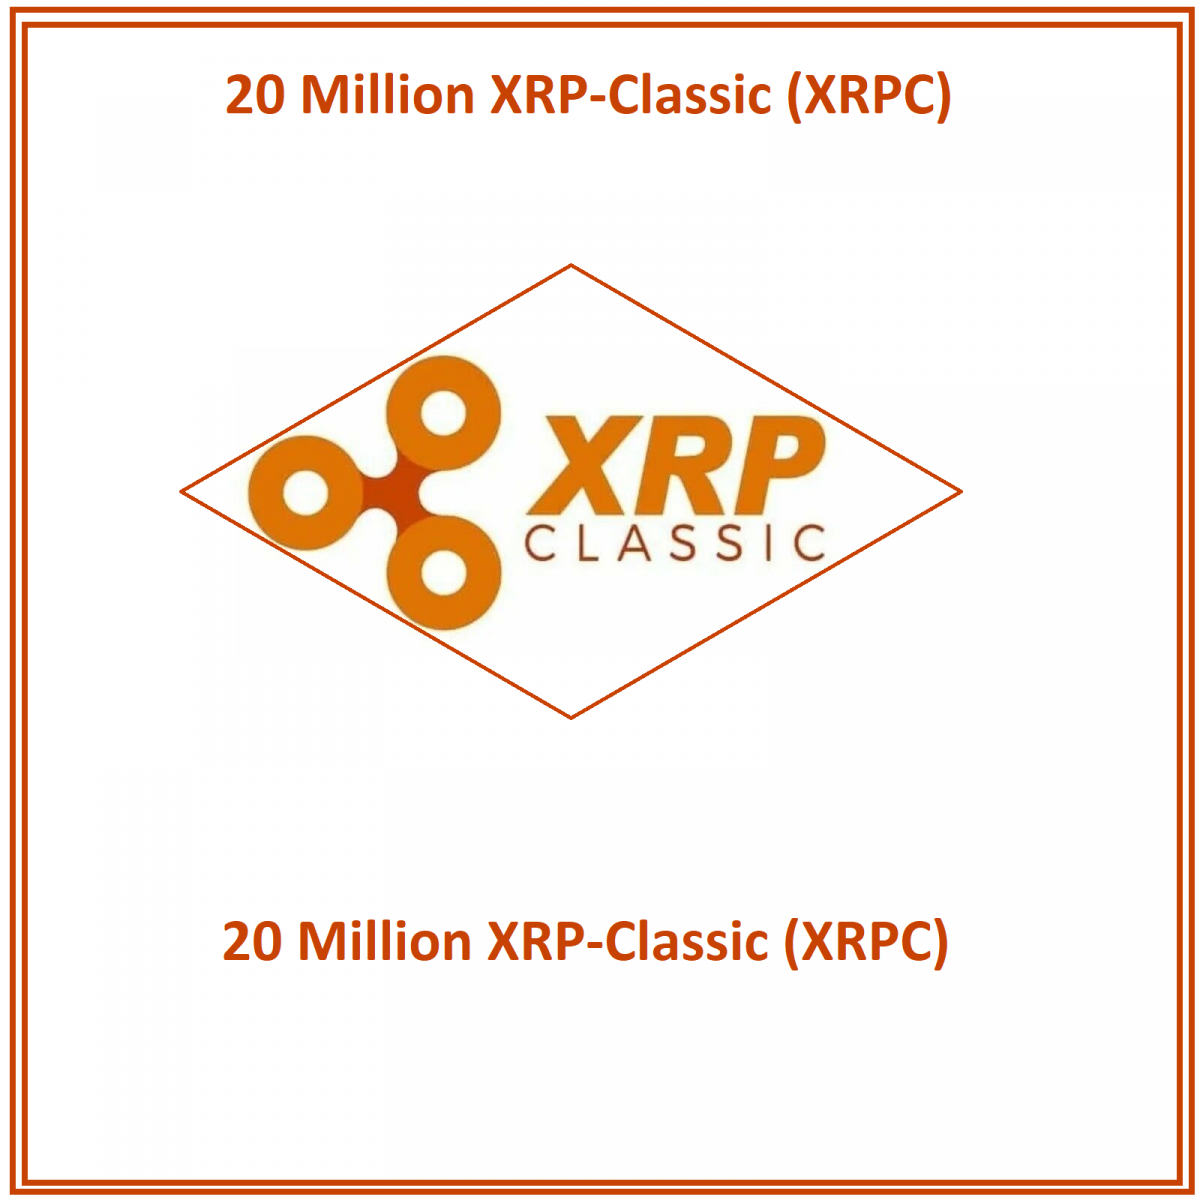 20 Million XRP-Classic (XRPC) Mining Contract